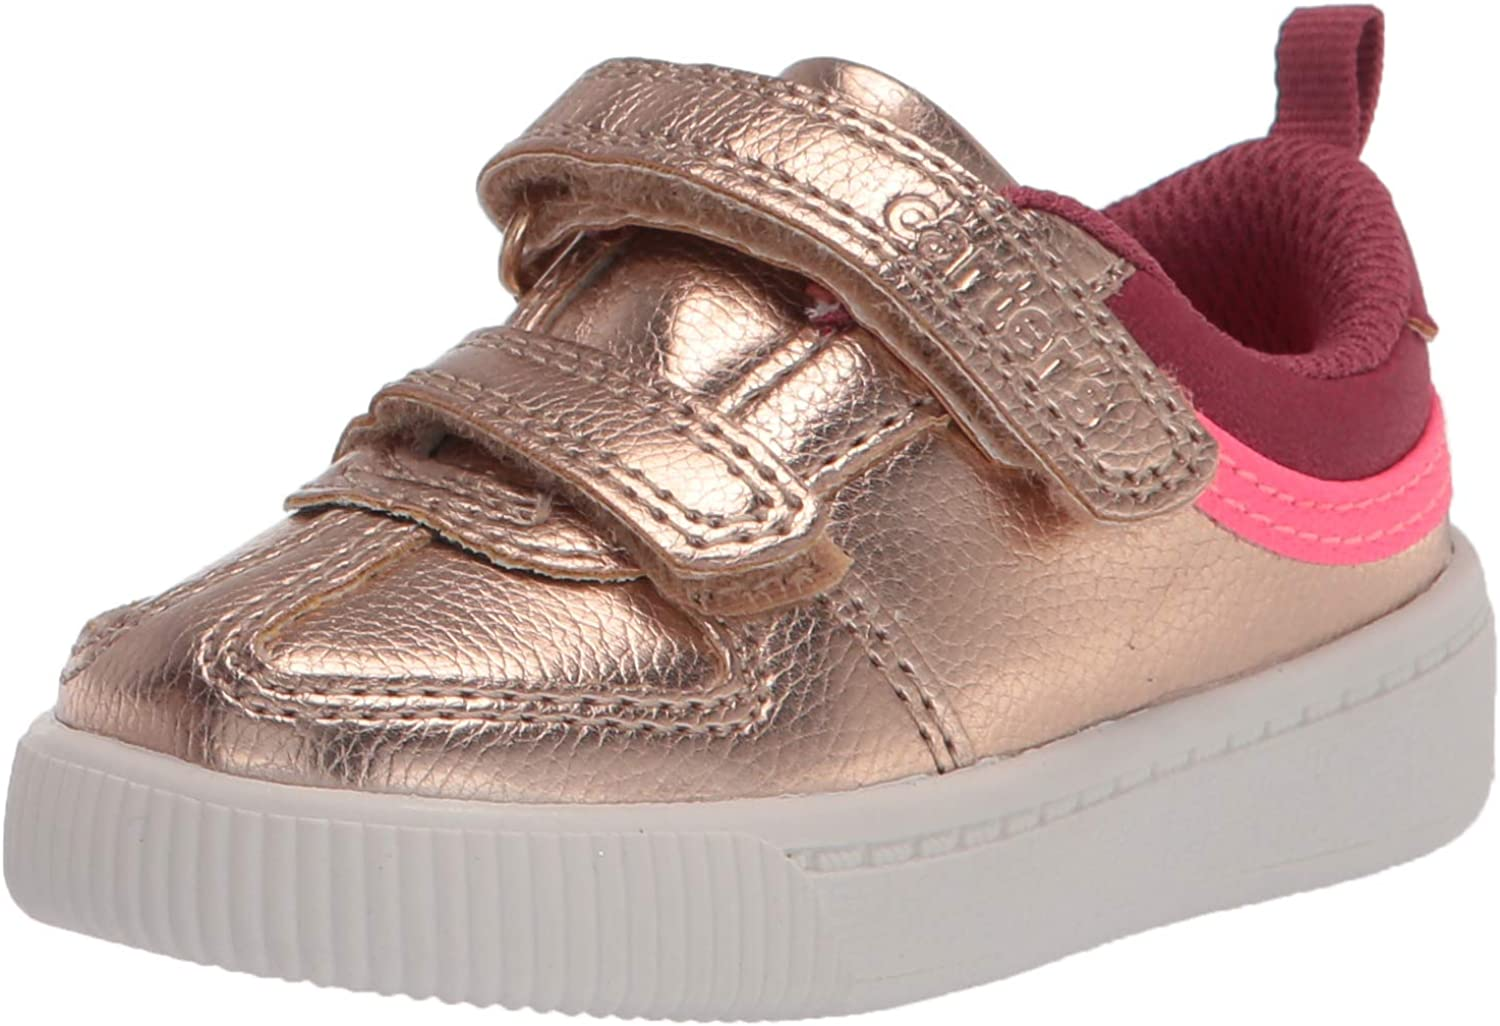 Carter's Don't miss the campaign Unisex-Child Devin Popular standard Sneaker